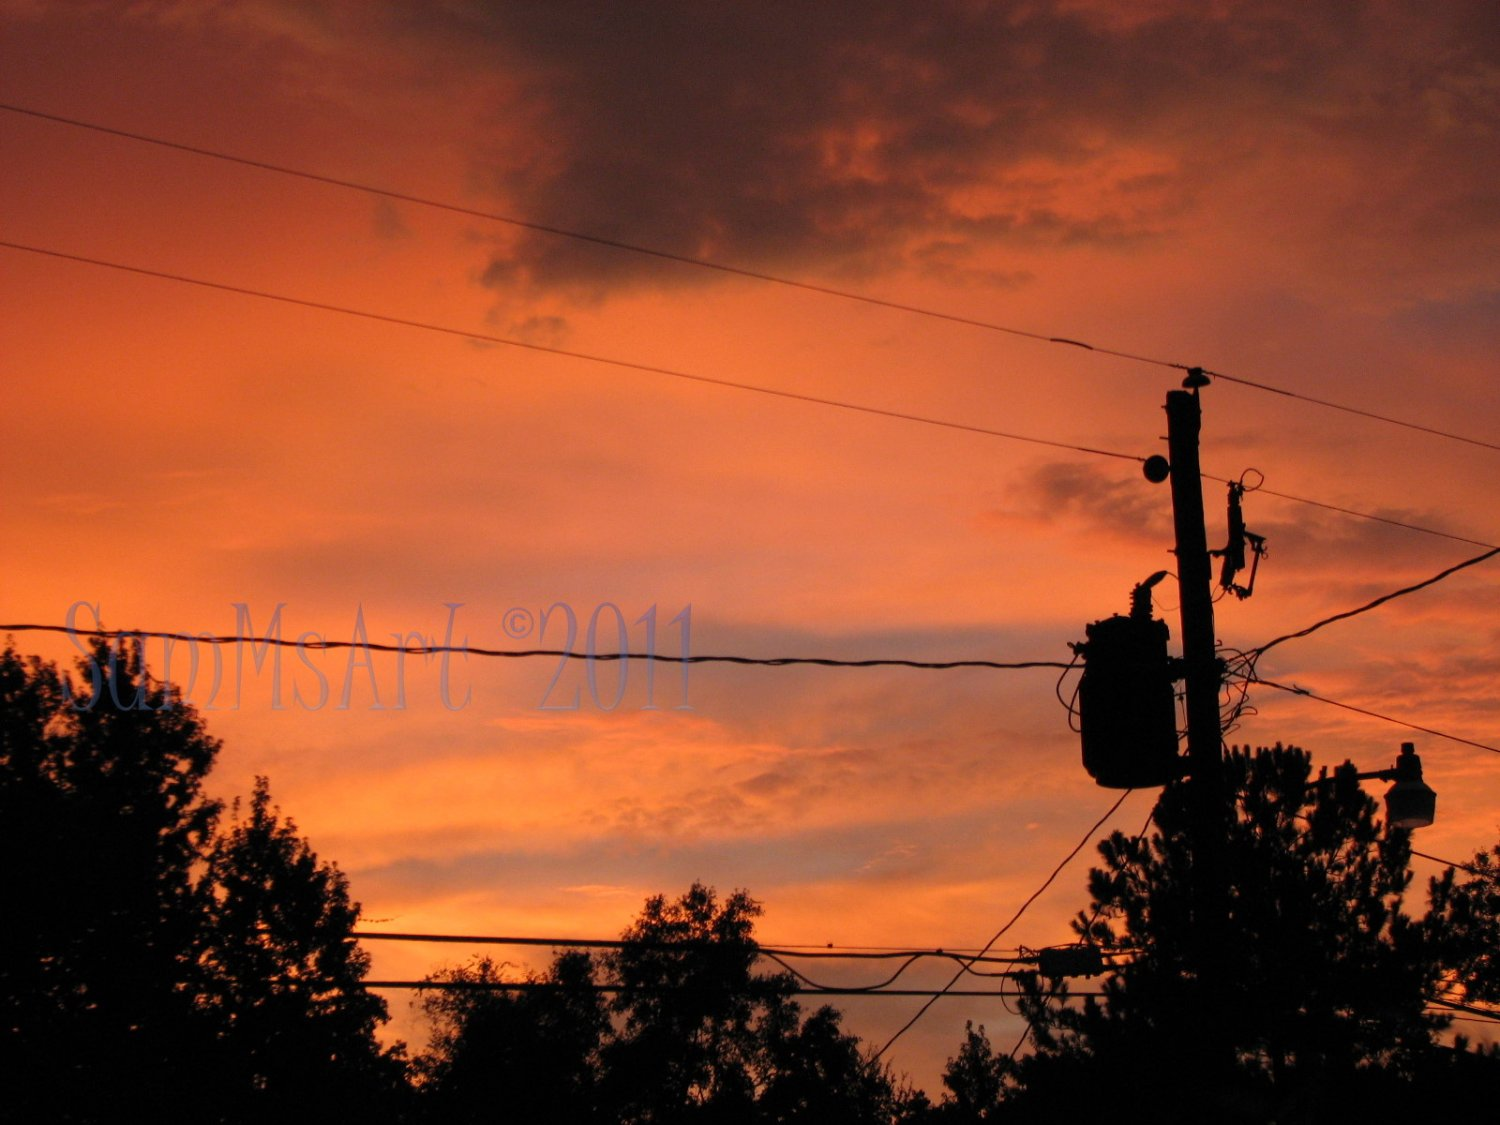 August 32 - 8x10 Print, Digital Fine Art Image Photo - Sunset, summer, fall, Power lines, Clouds